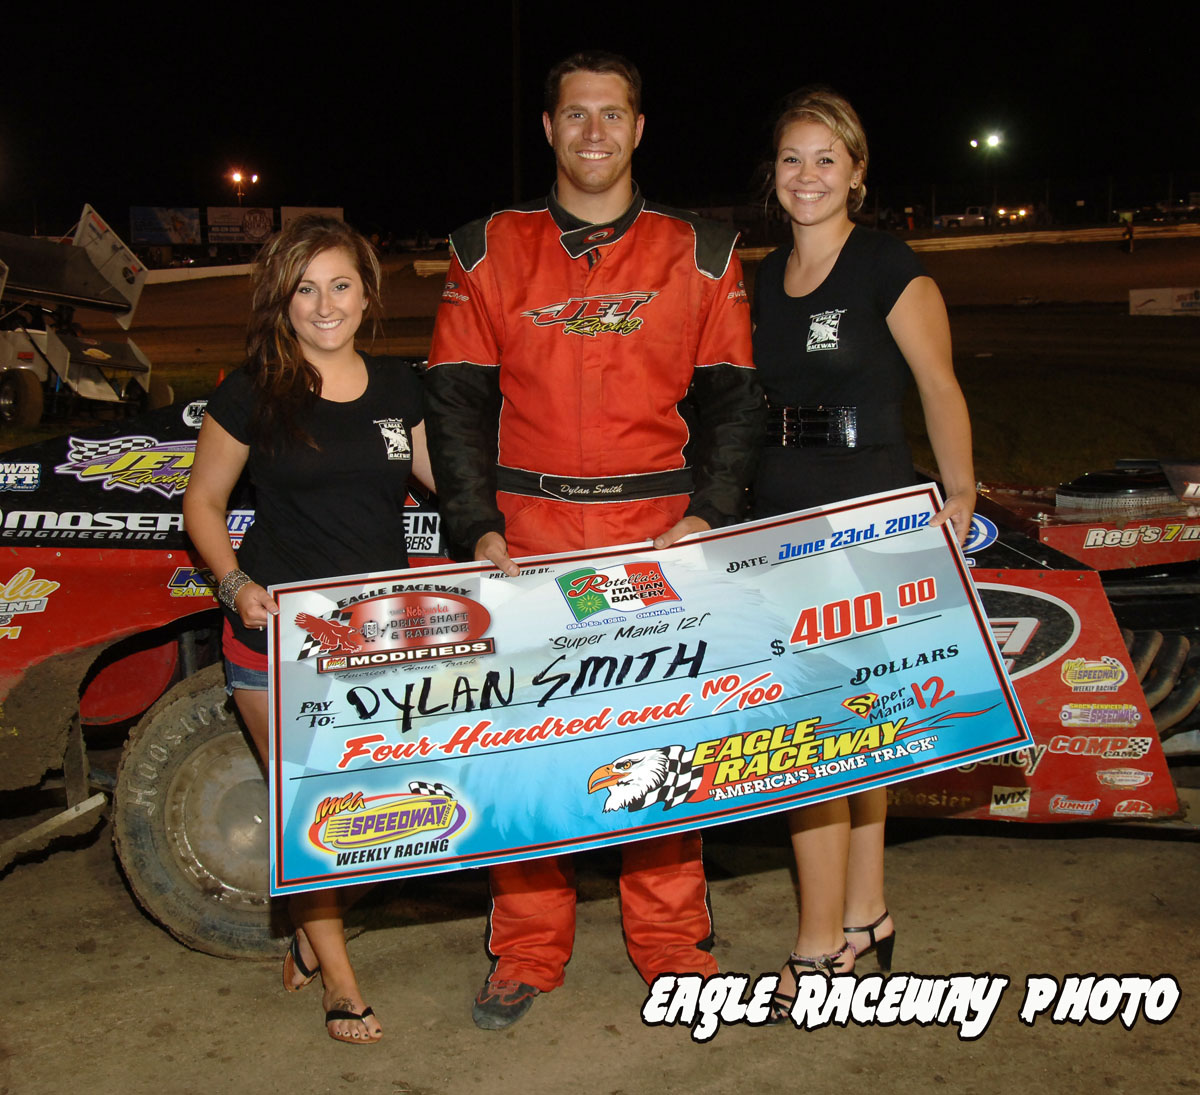 eagle-06-23-12-422-dylan-smith-with-jamie-kromberg-and-lindsey-flodman-and-flagman-billy-lloyd